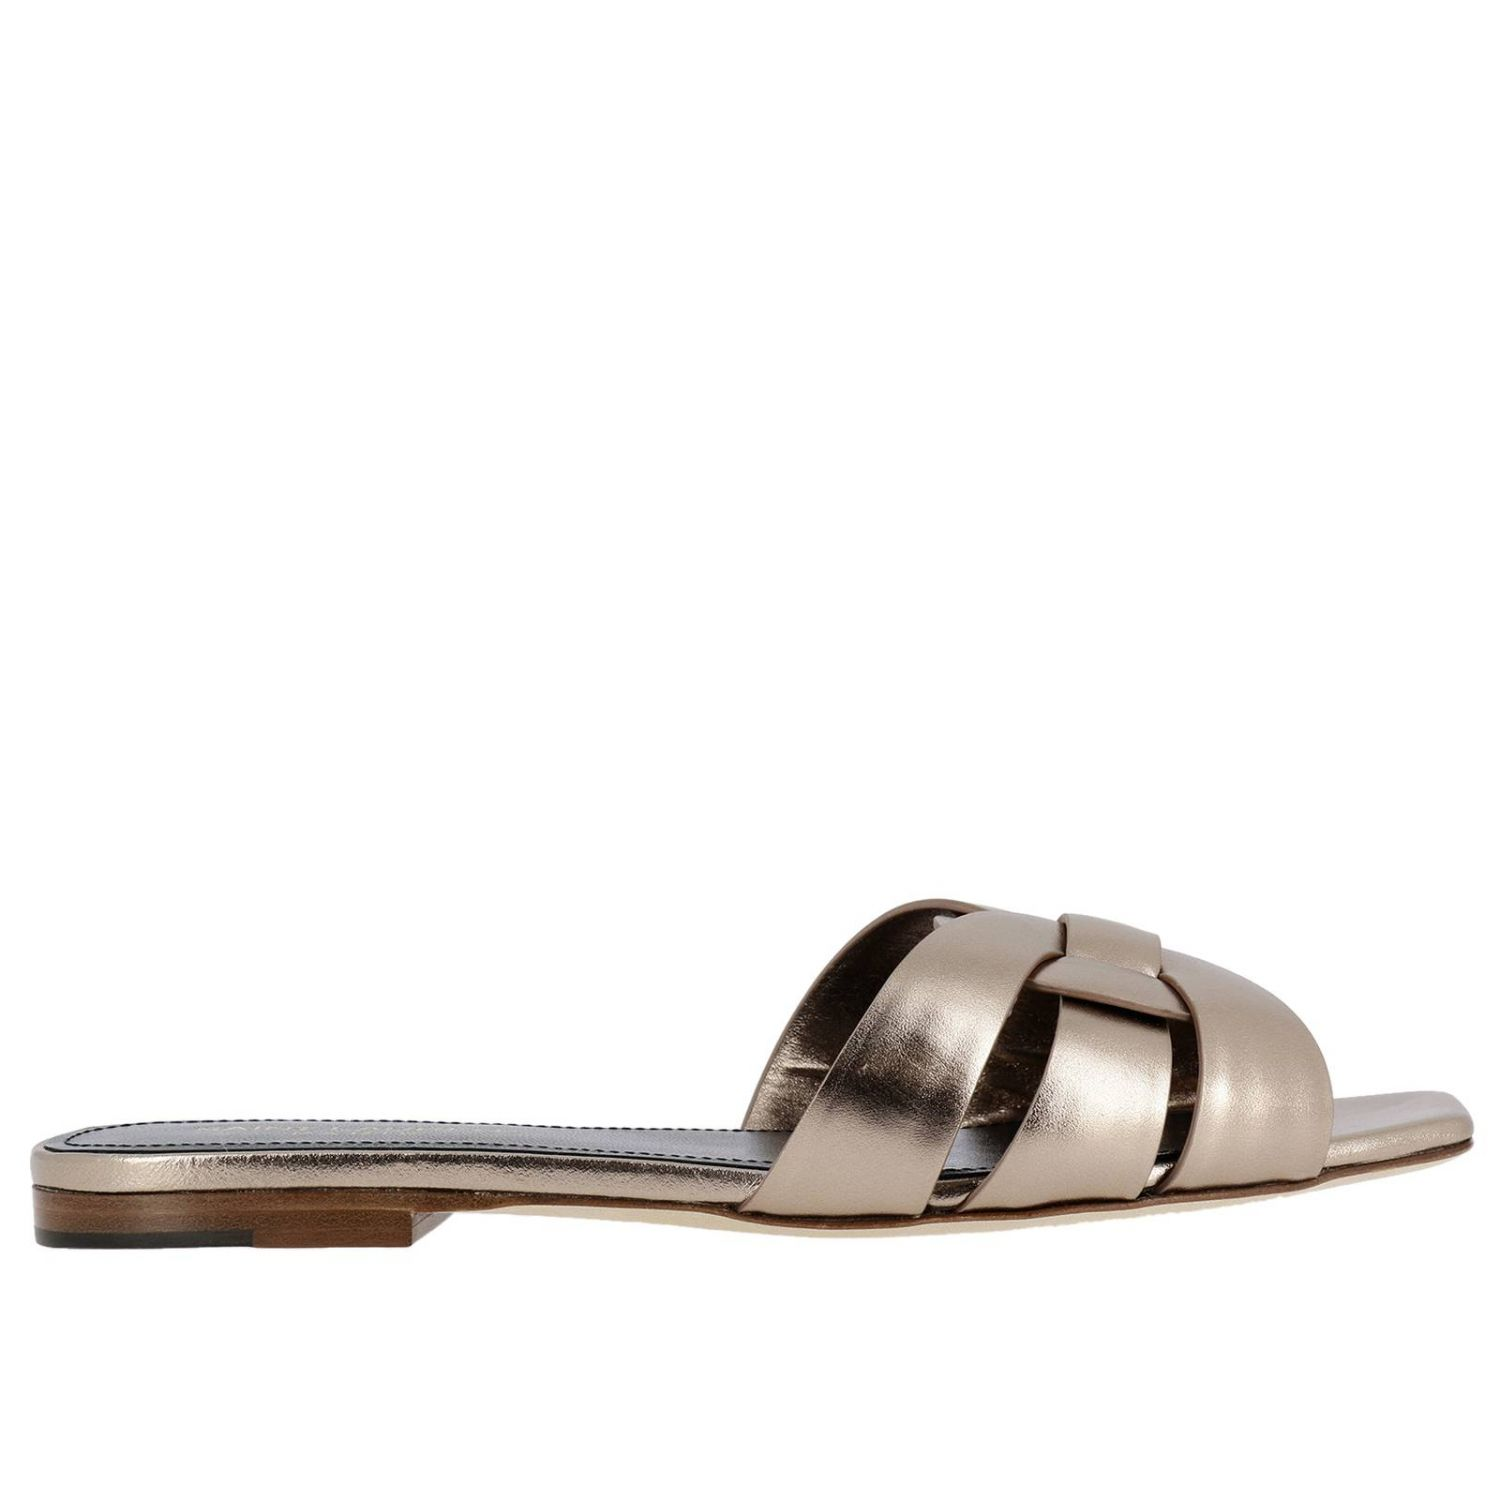 Saint Laurent Tribute sandal in soft laminated leather with crossed straps pink 1